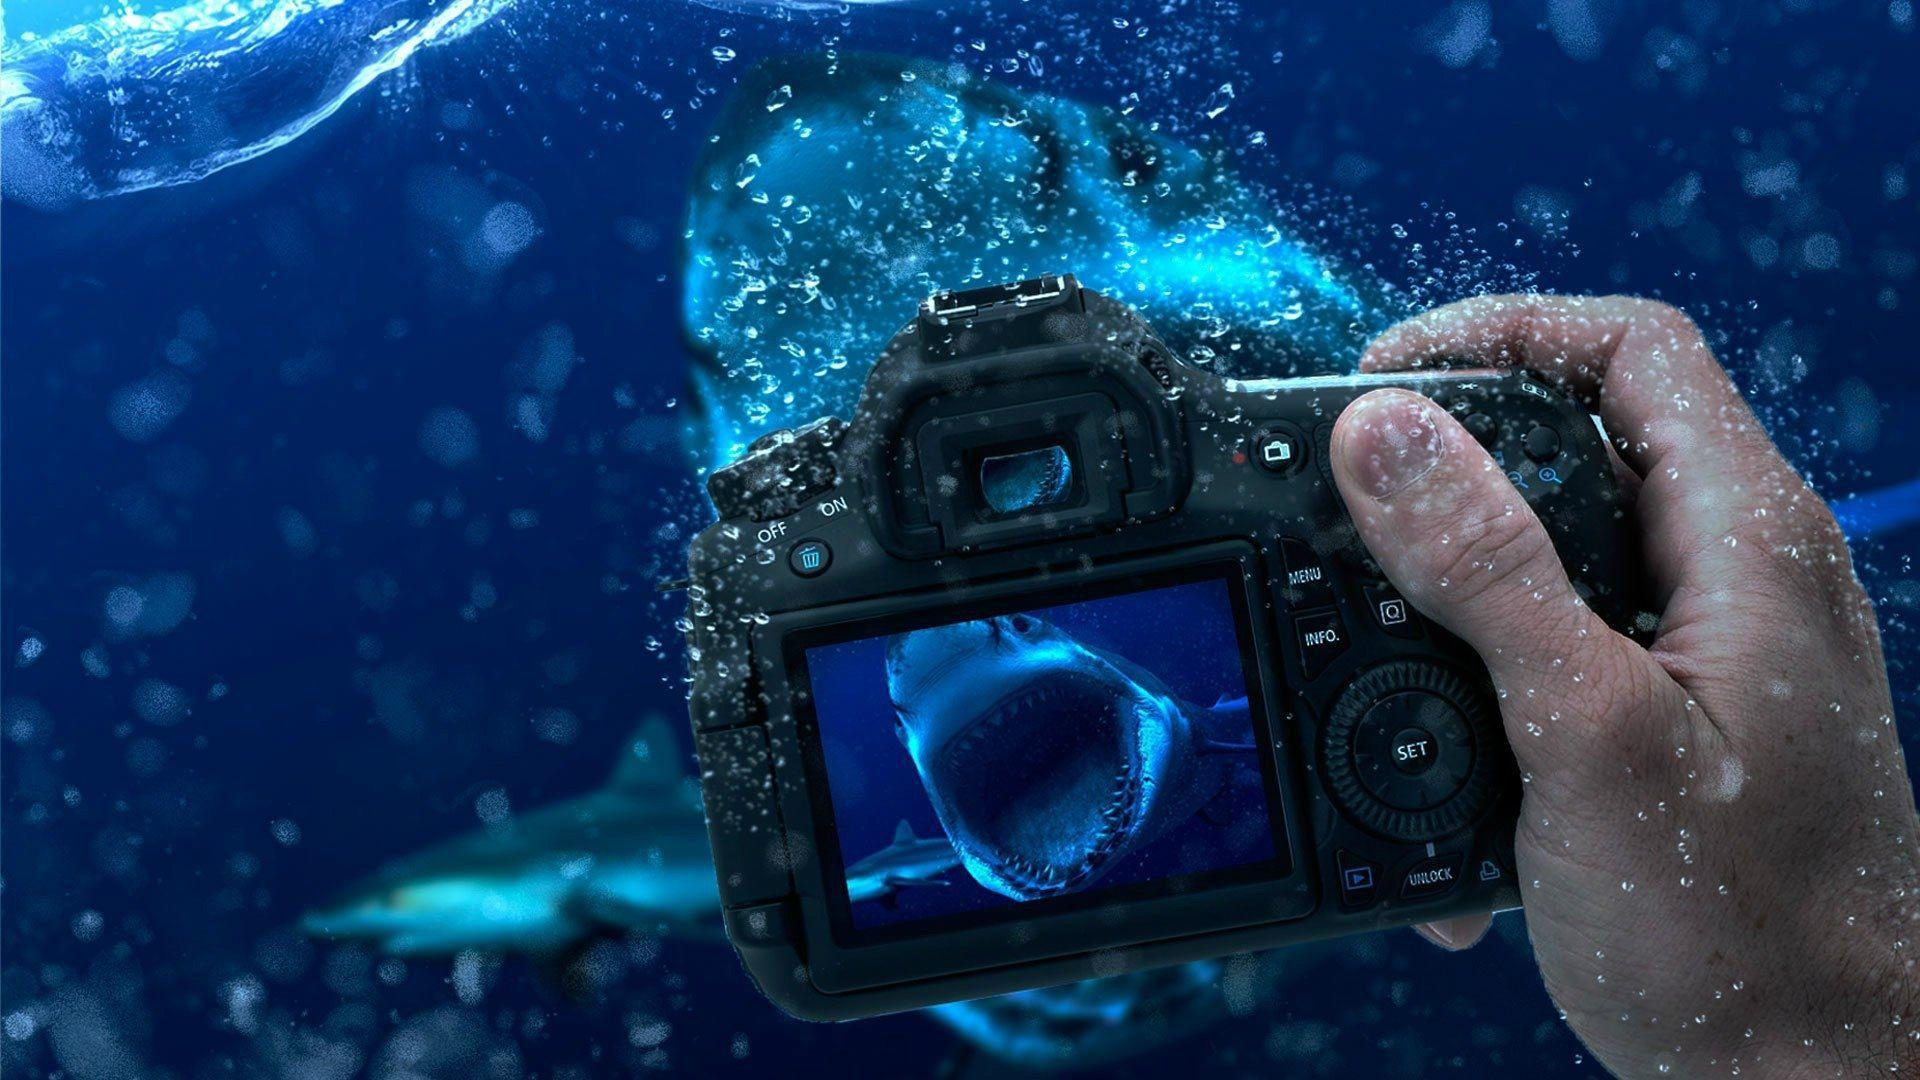 309 Camera HD Wallpapers | Backgrounds - Wallpaper Abyss